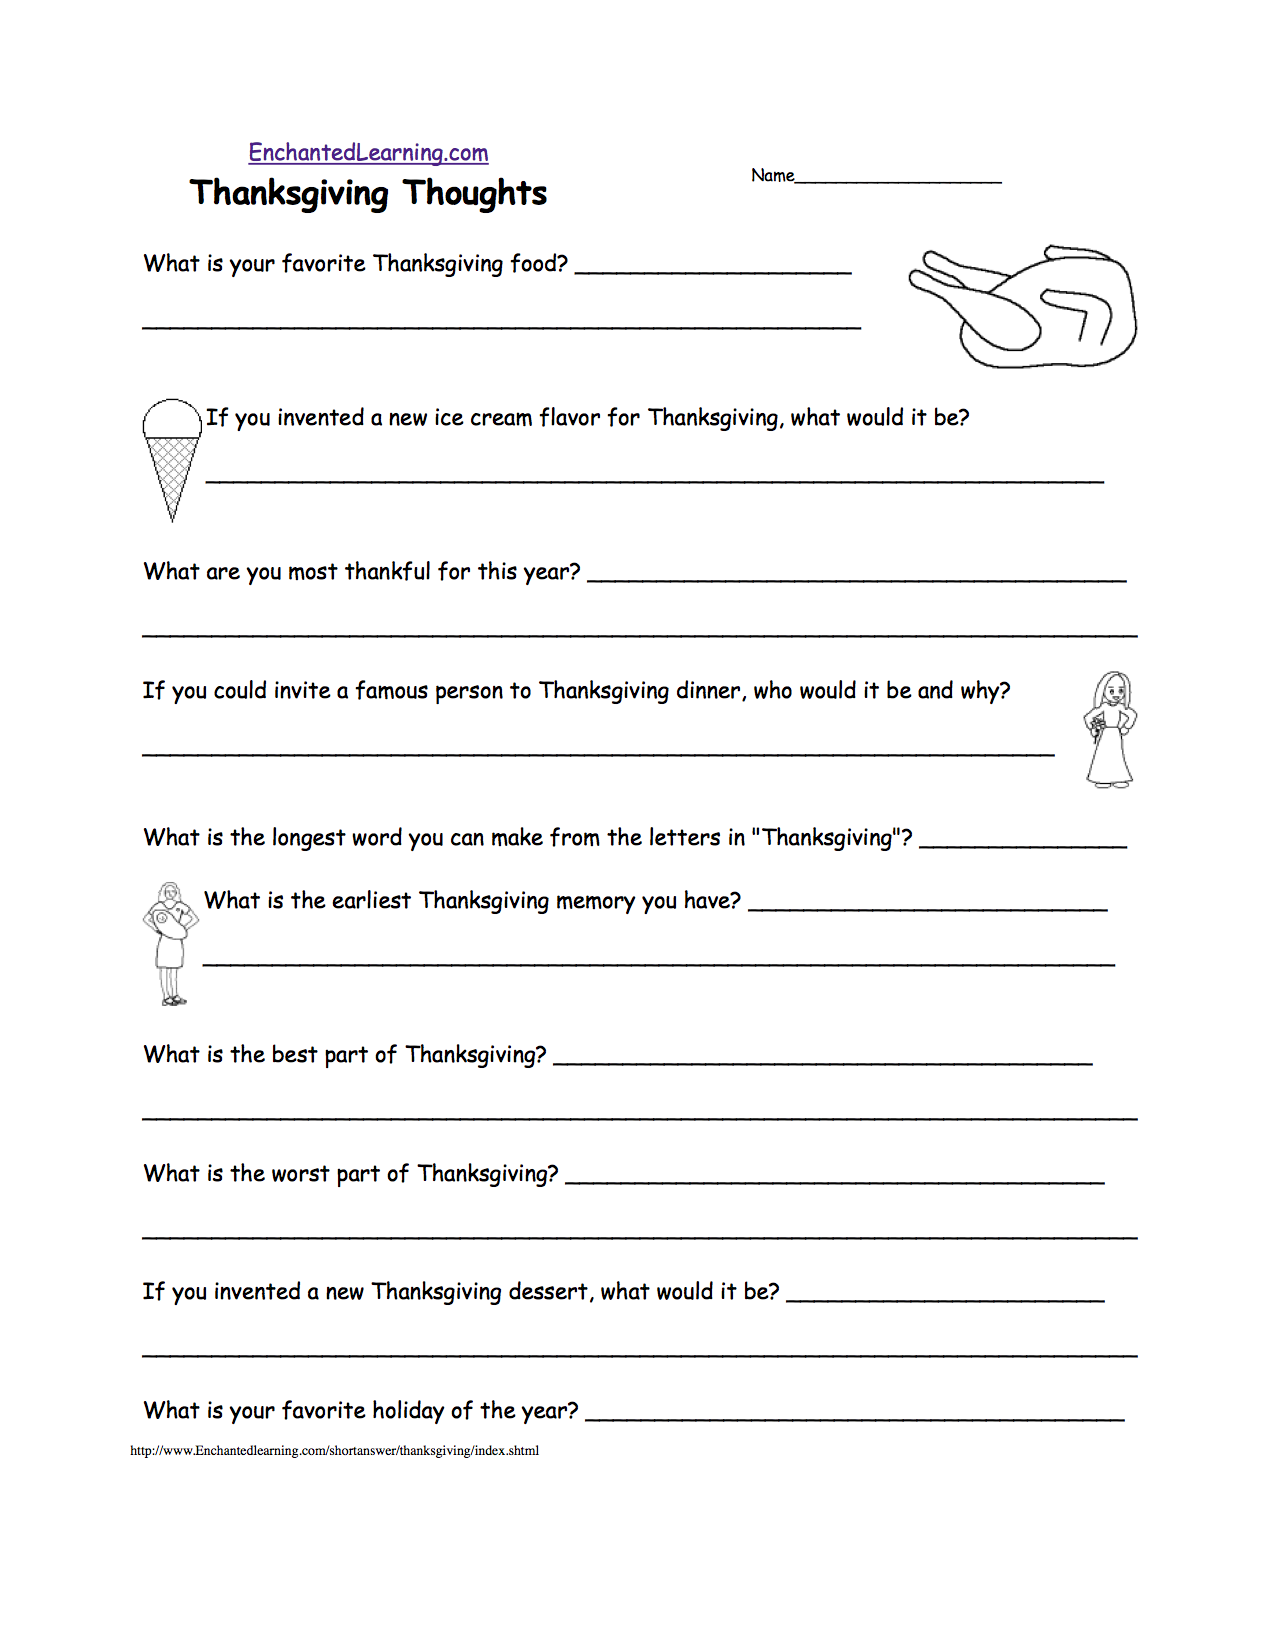 math worksheet : thanksgiving crafts worksheets and activities  : Thanksgiving Math Puzzles Worksheets